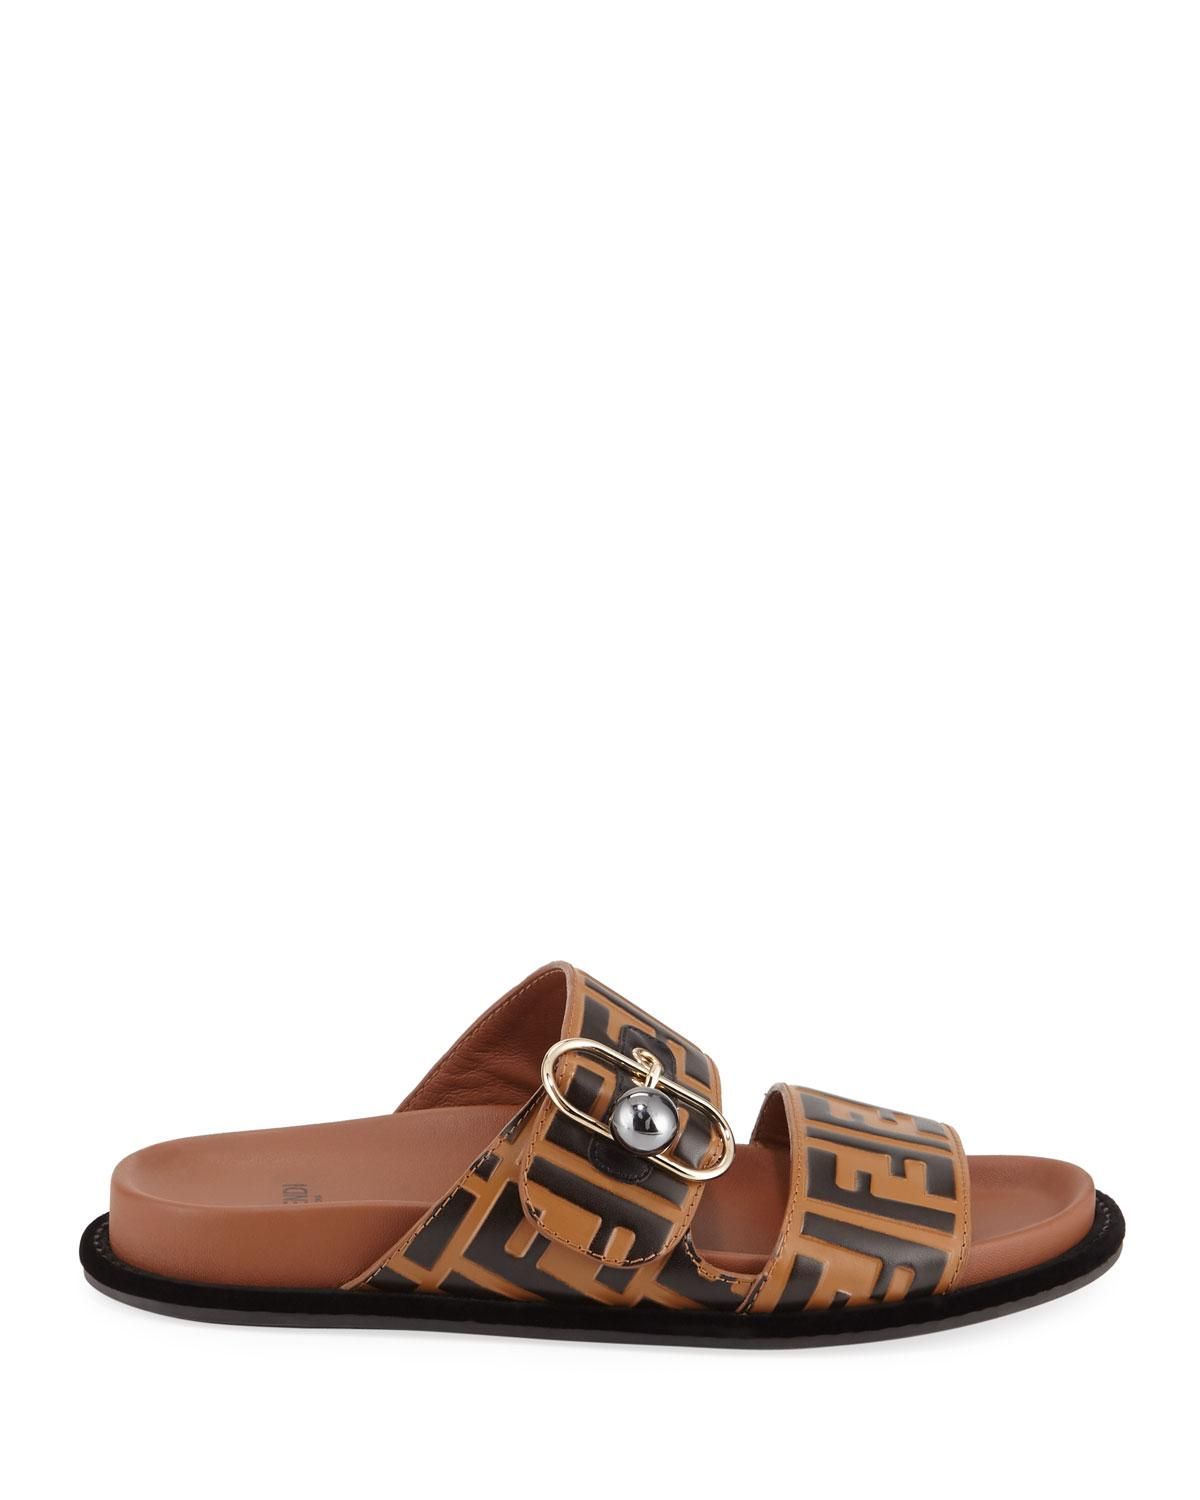 c6dae6635a30 Lyst - Fendi Ff Double Strap Sandals in Brown - Save 35%